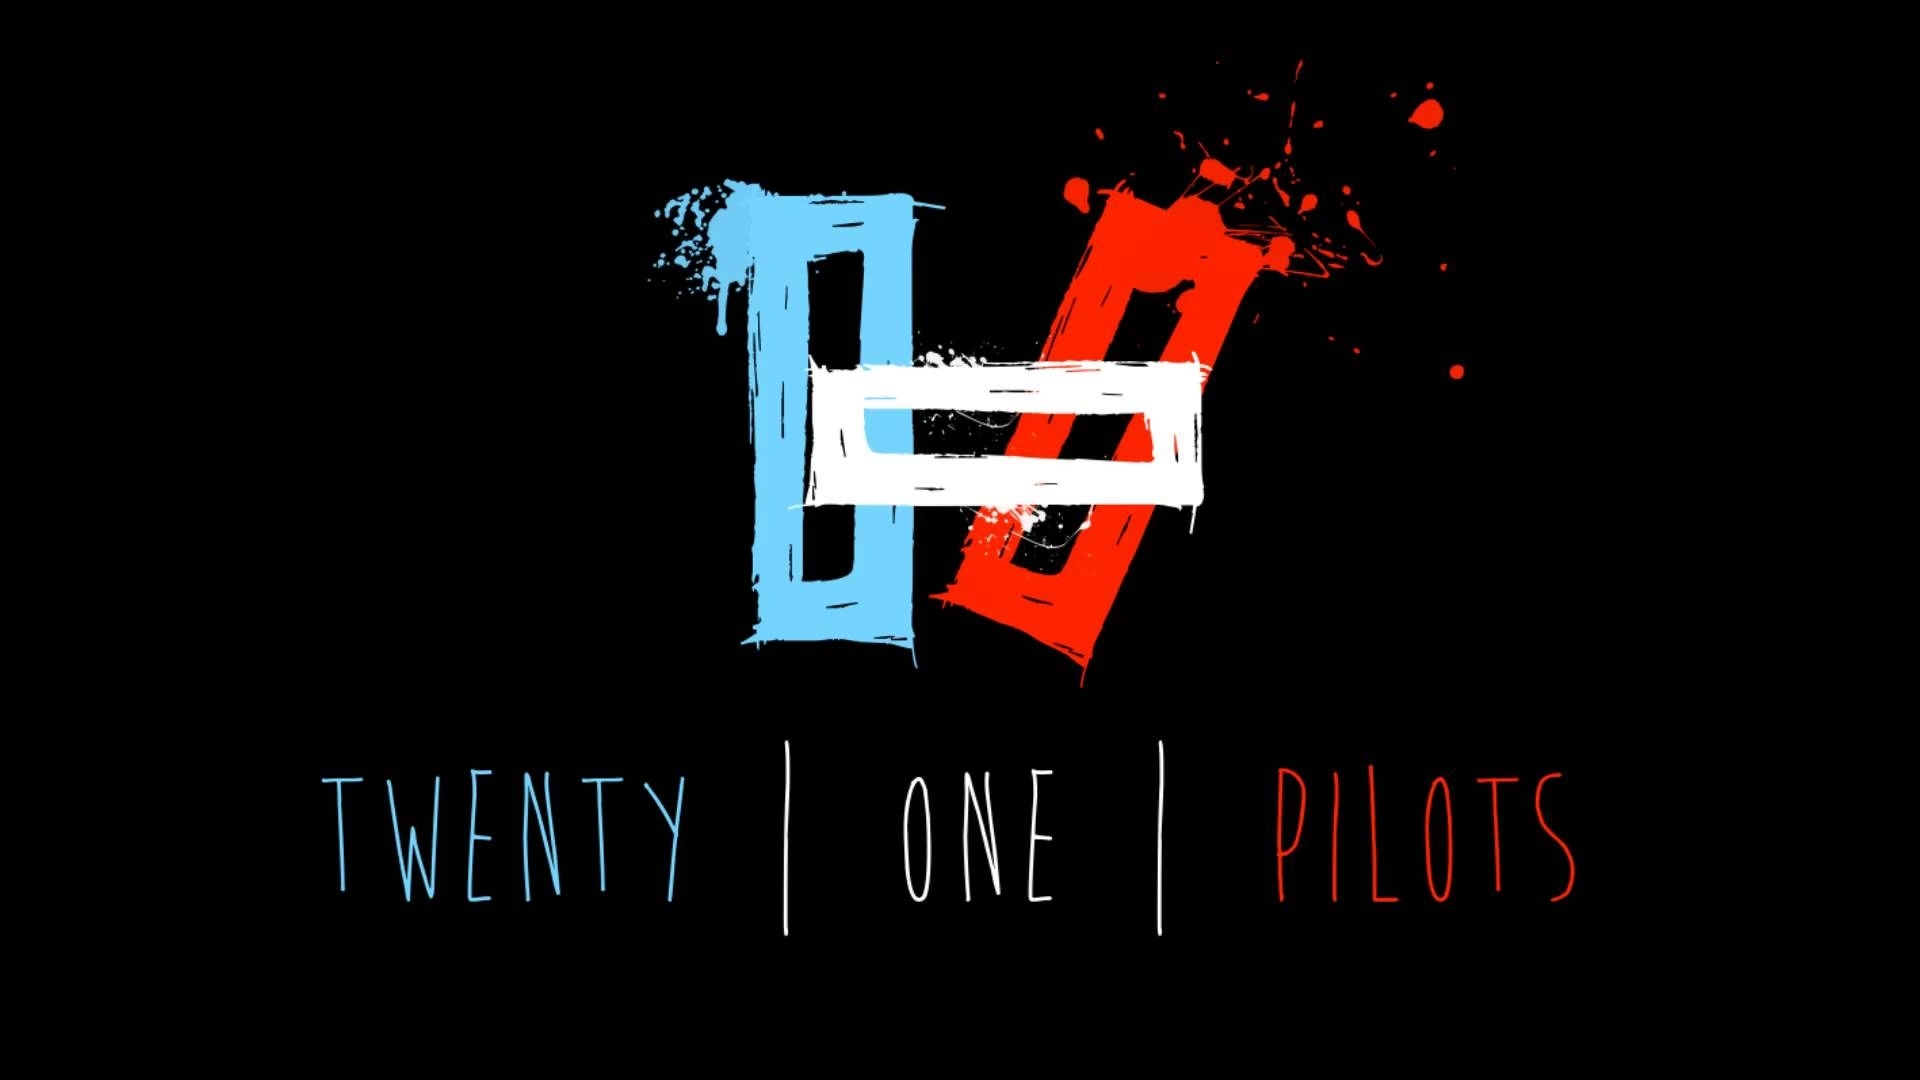 twenty one pilots wallpapers - wallpaper cave